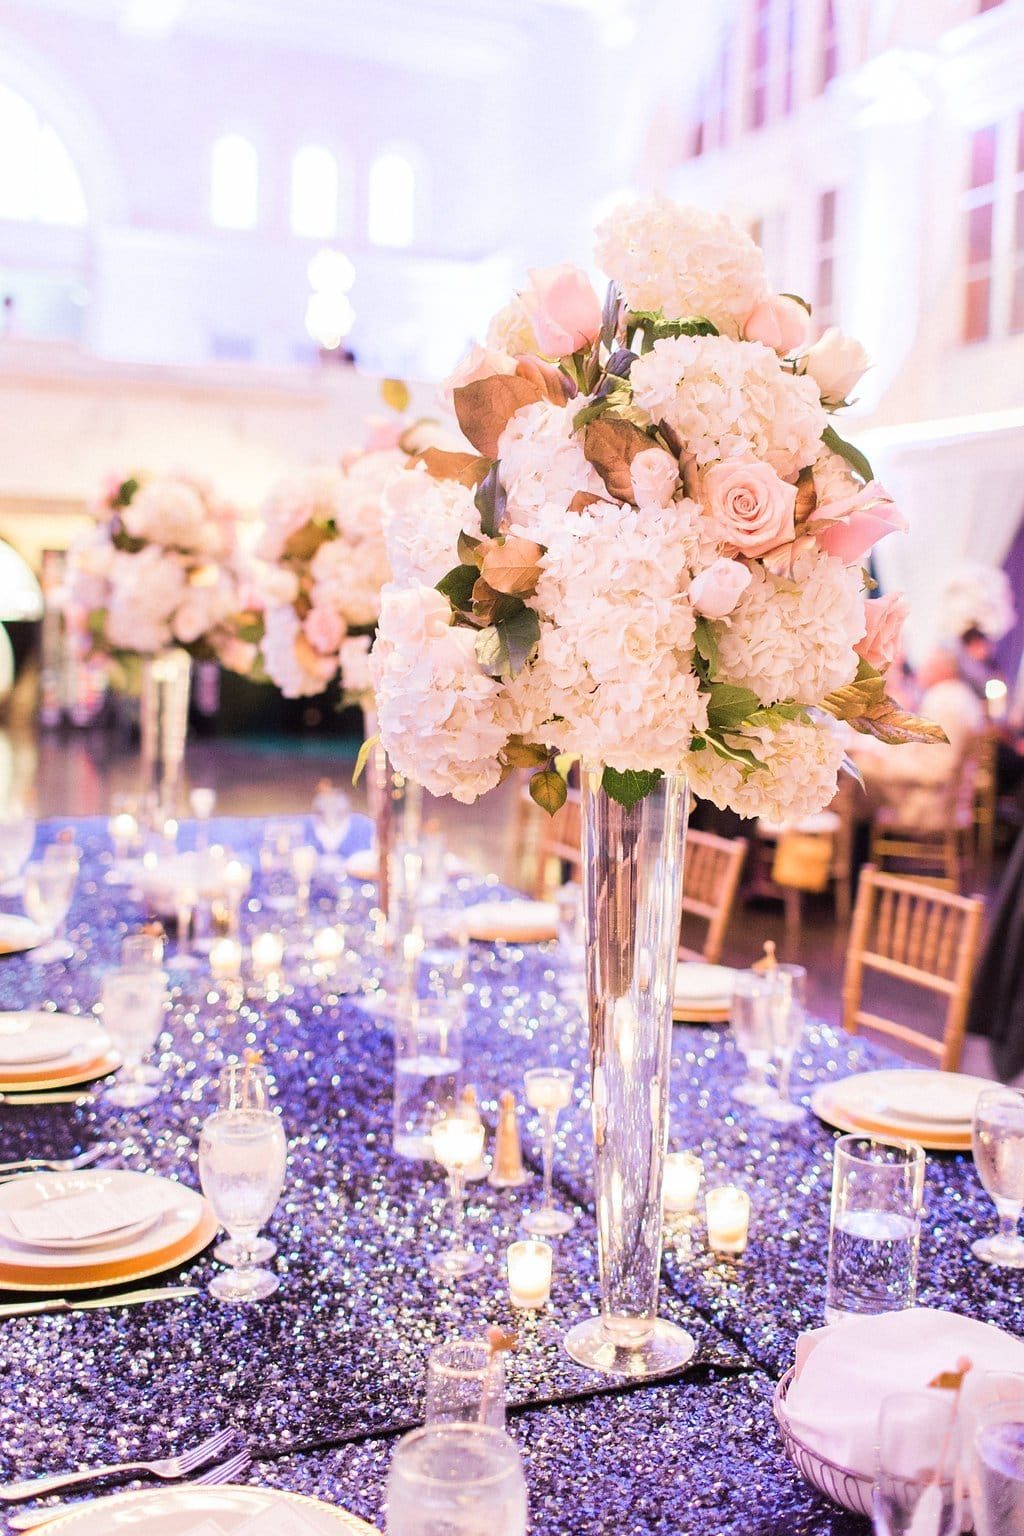 Table decor with tall center floral center pieces